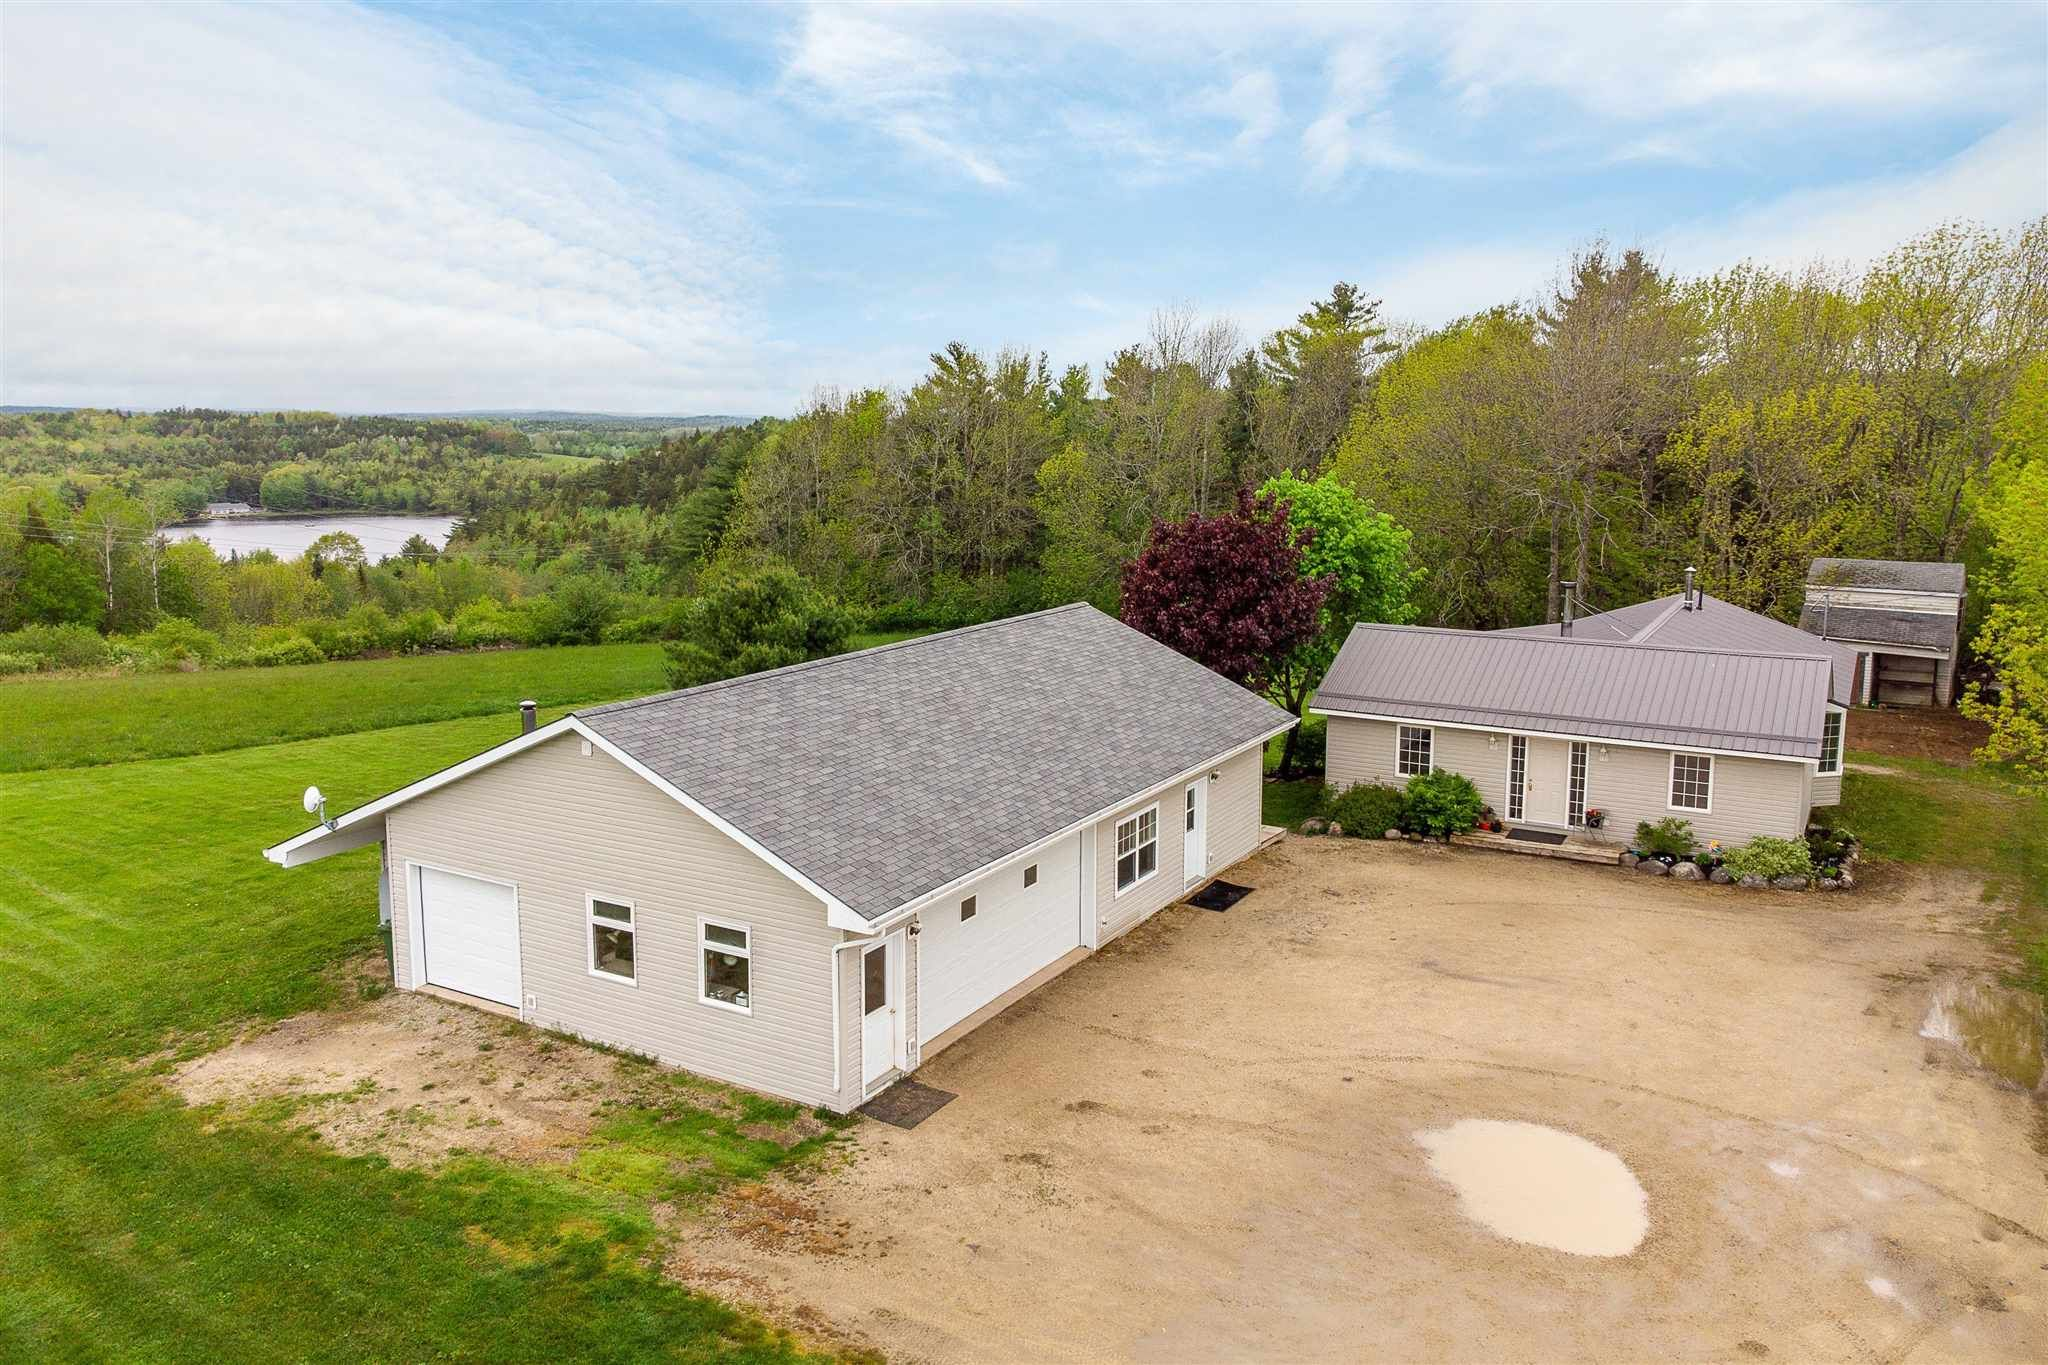 Main Photo: 288 Langille Lake Road in Blockhouse: 405-Lunenburg County Residential for sale (South Shore)  : MLS®# 202114114